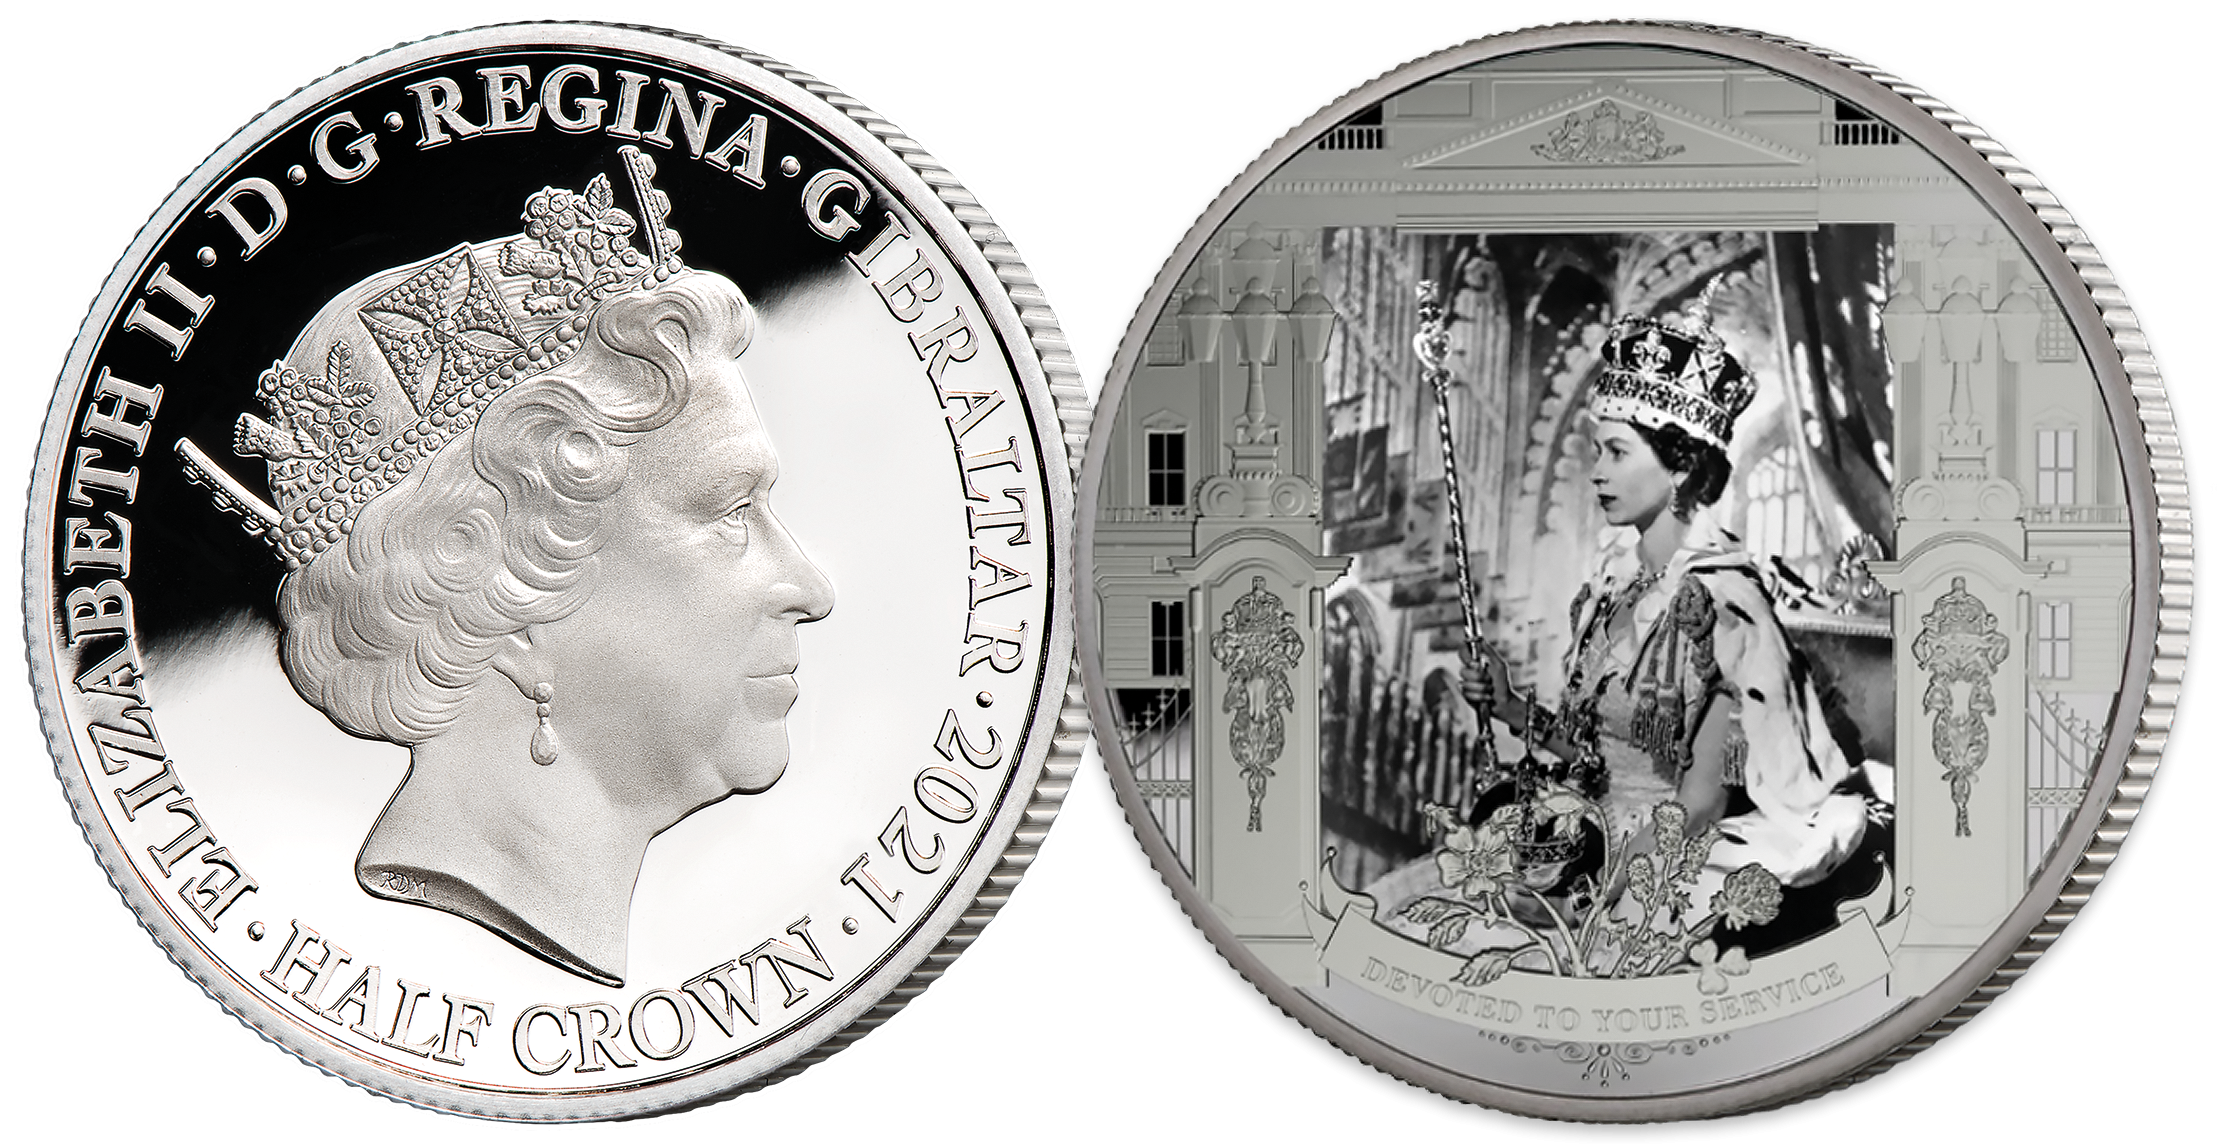 The photograph featured on the coin was taken on June 2nd, 1953, marking the formal  beginning of what would become the longest reign in British history